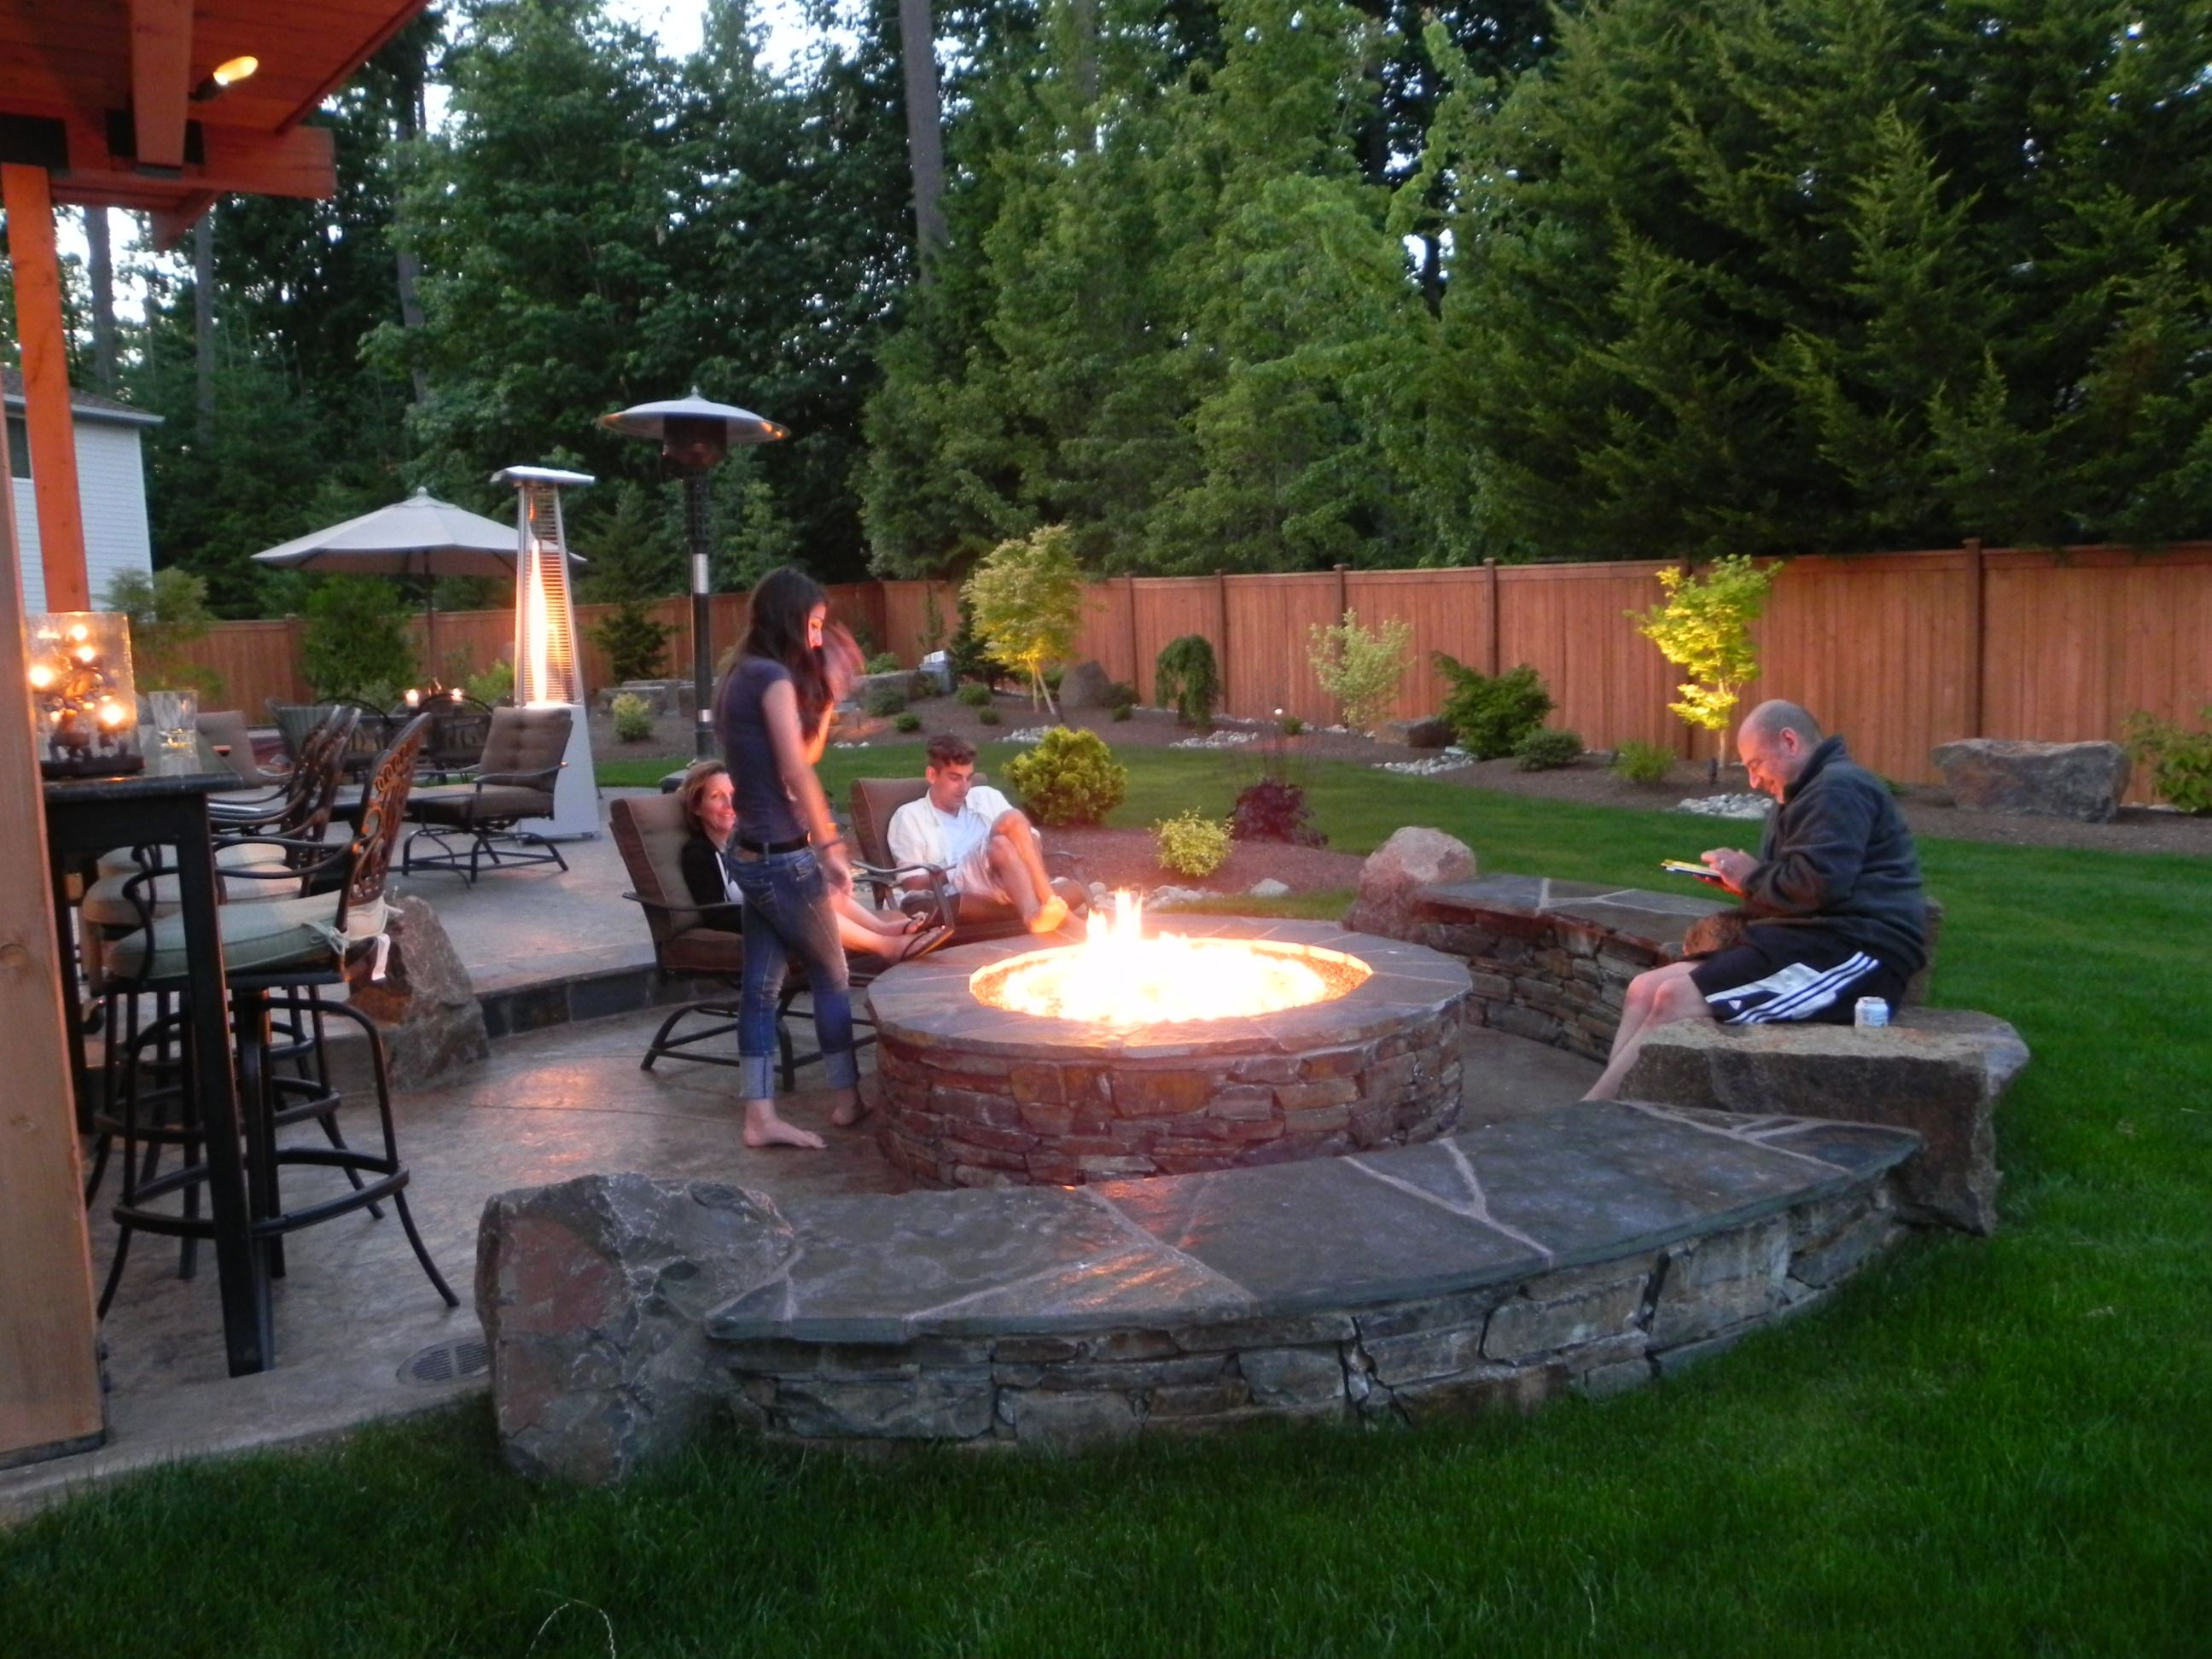 Fireplace Or Fire Pit Backyard Ideas Fire Pit Patio Fire Pit with 15 Smart Designs of How to Improve Backyard Landscaping Ideas With Fire Pit